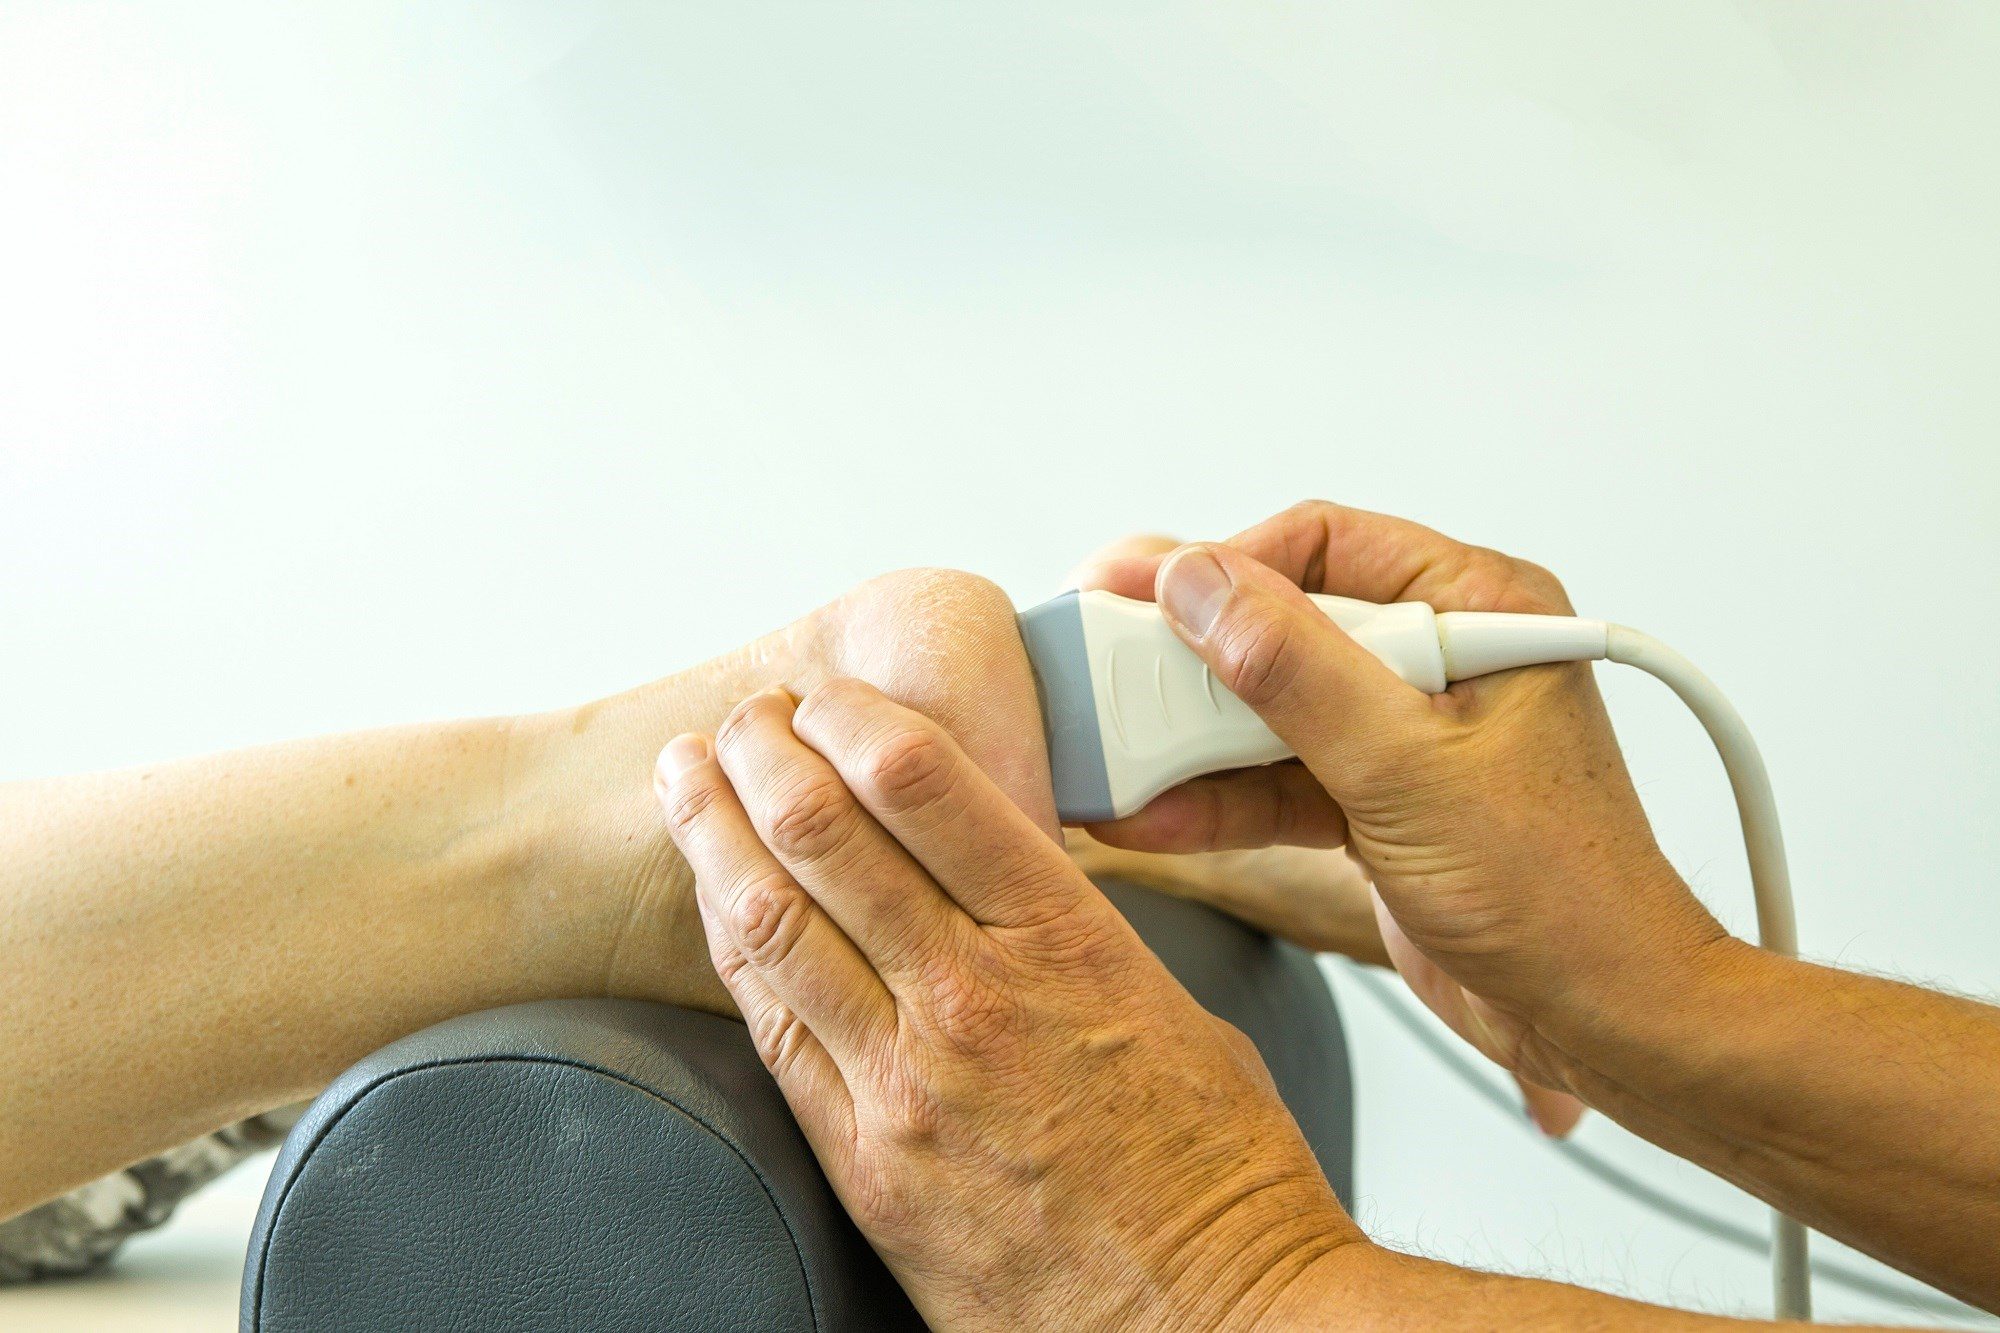 OMERACT Group Develops Reliable Ultrasound Definition of Enthesitis in PsA, SpA